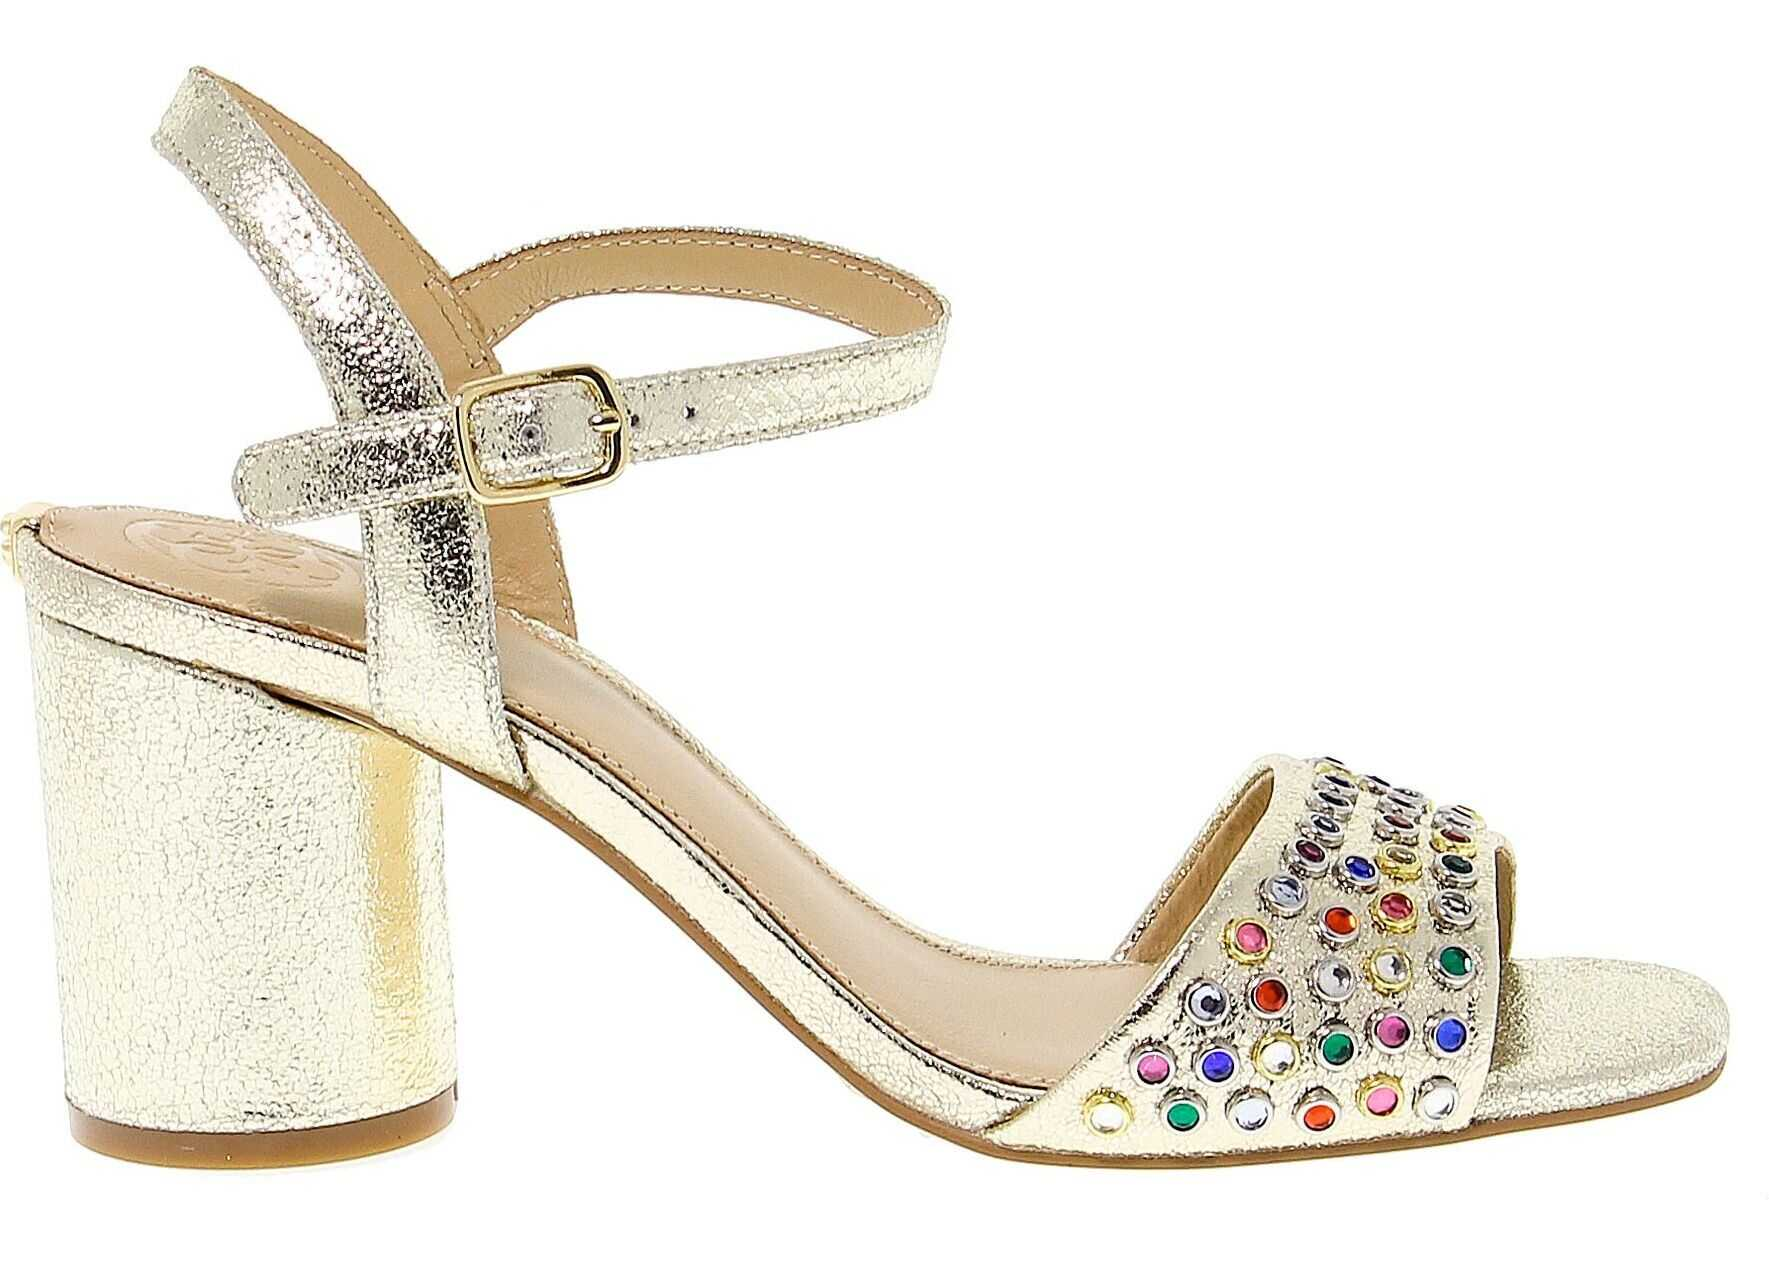 GUESS Leather Sandals GOLD